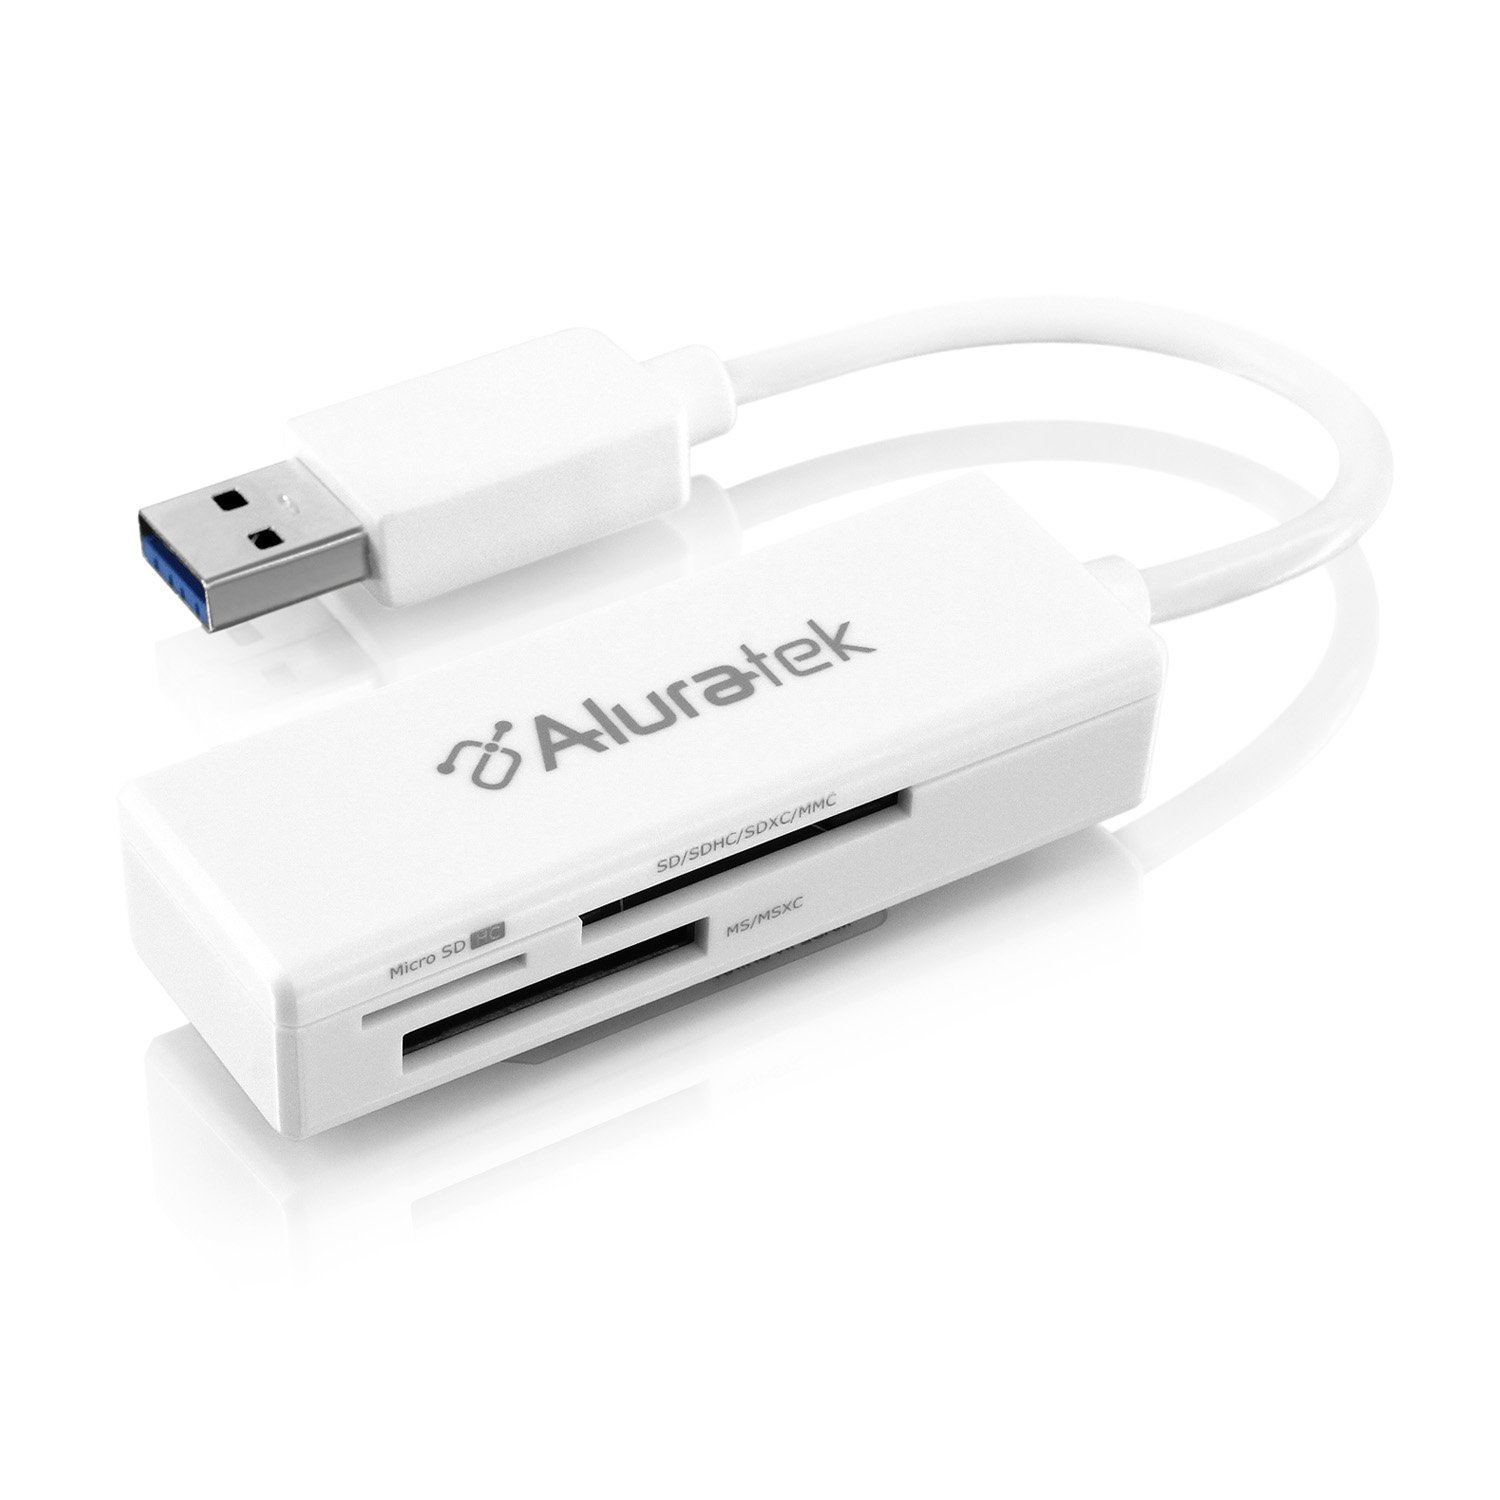 Aluratek USB. 3.0 MultiMedia Card Reader (aucr300f)